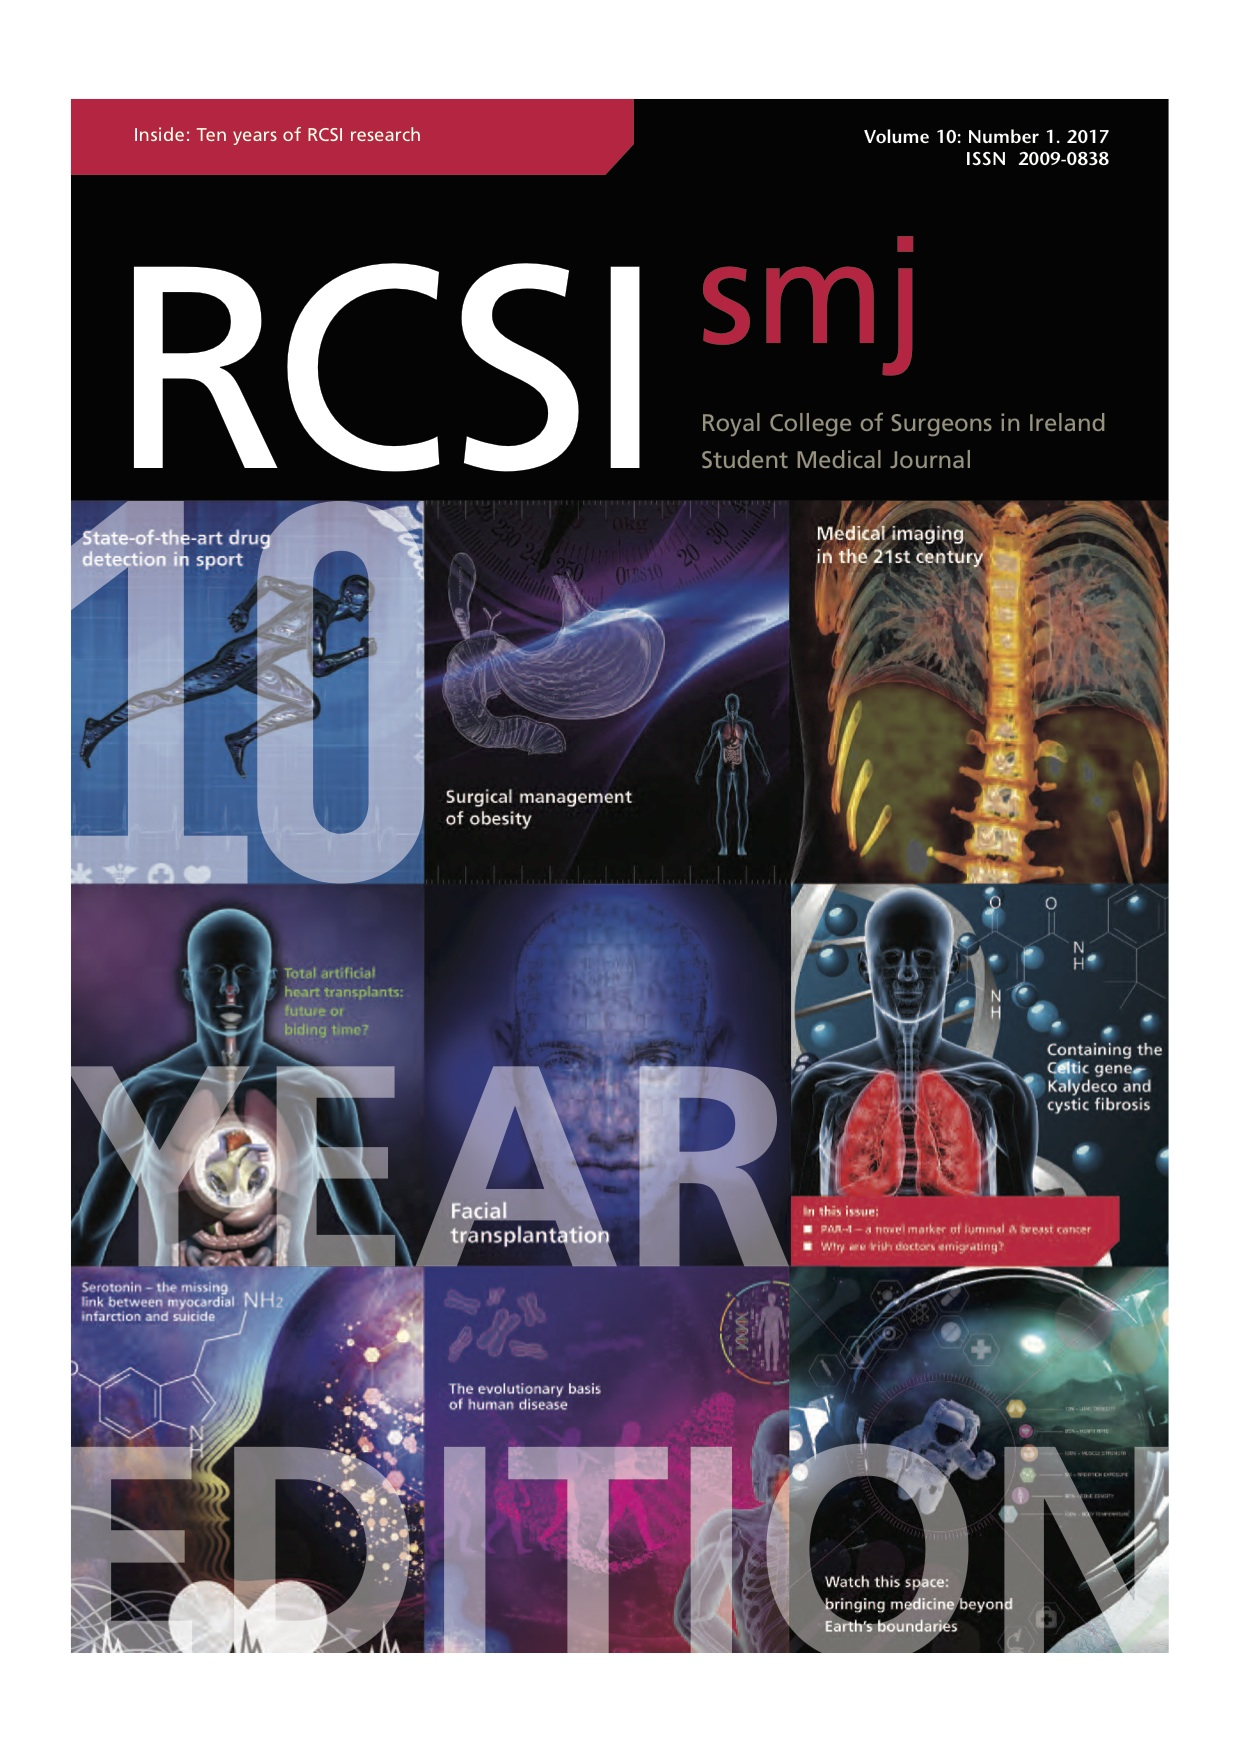 RCSIsmj Vol 10 Cover